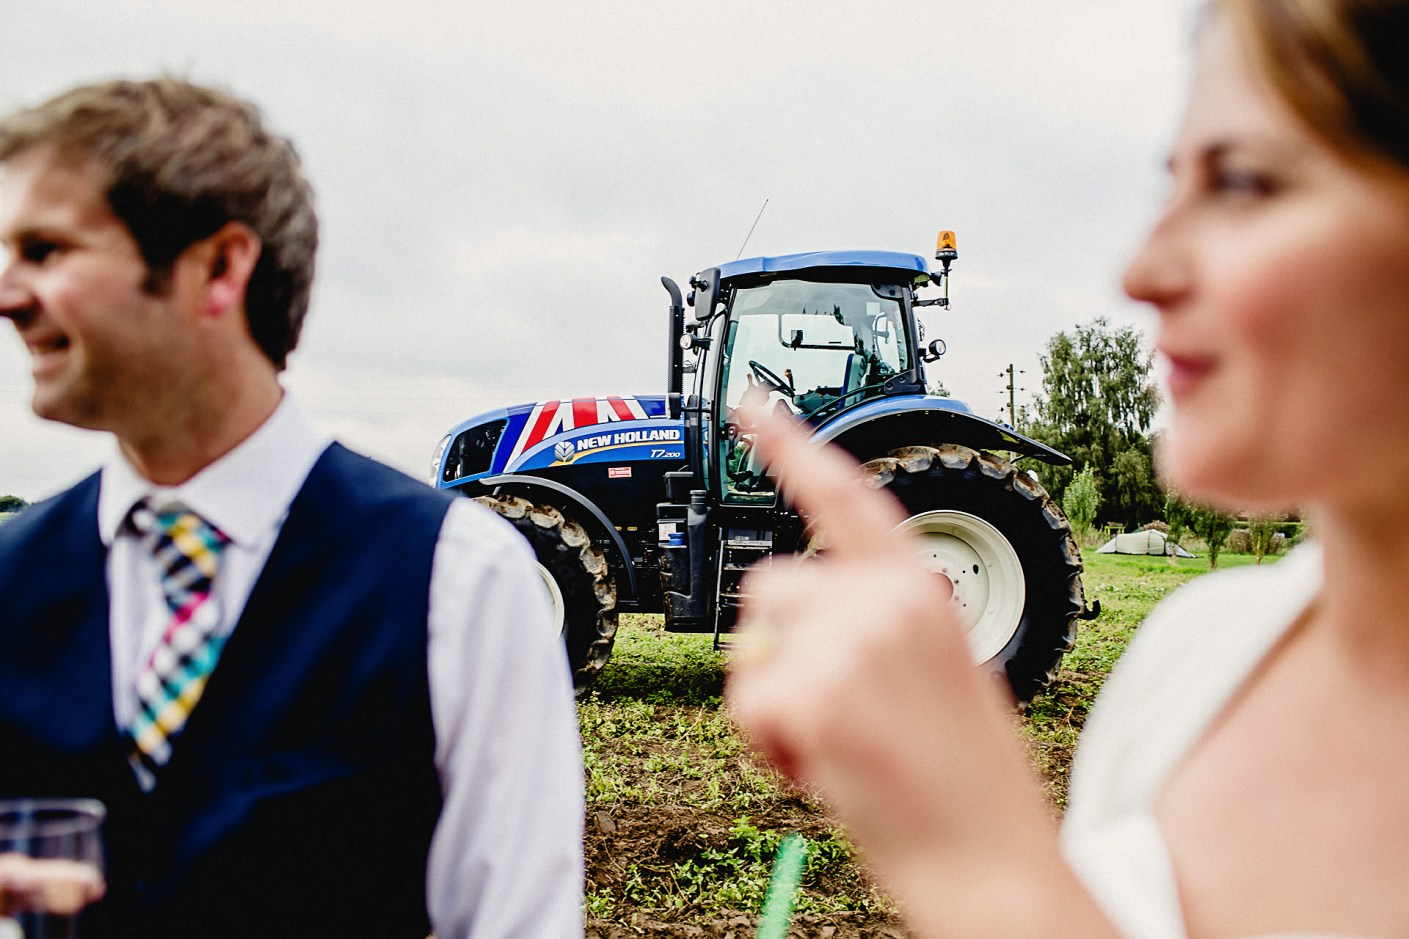 the tractor again